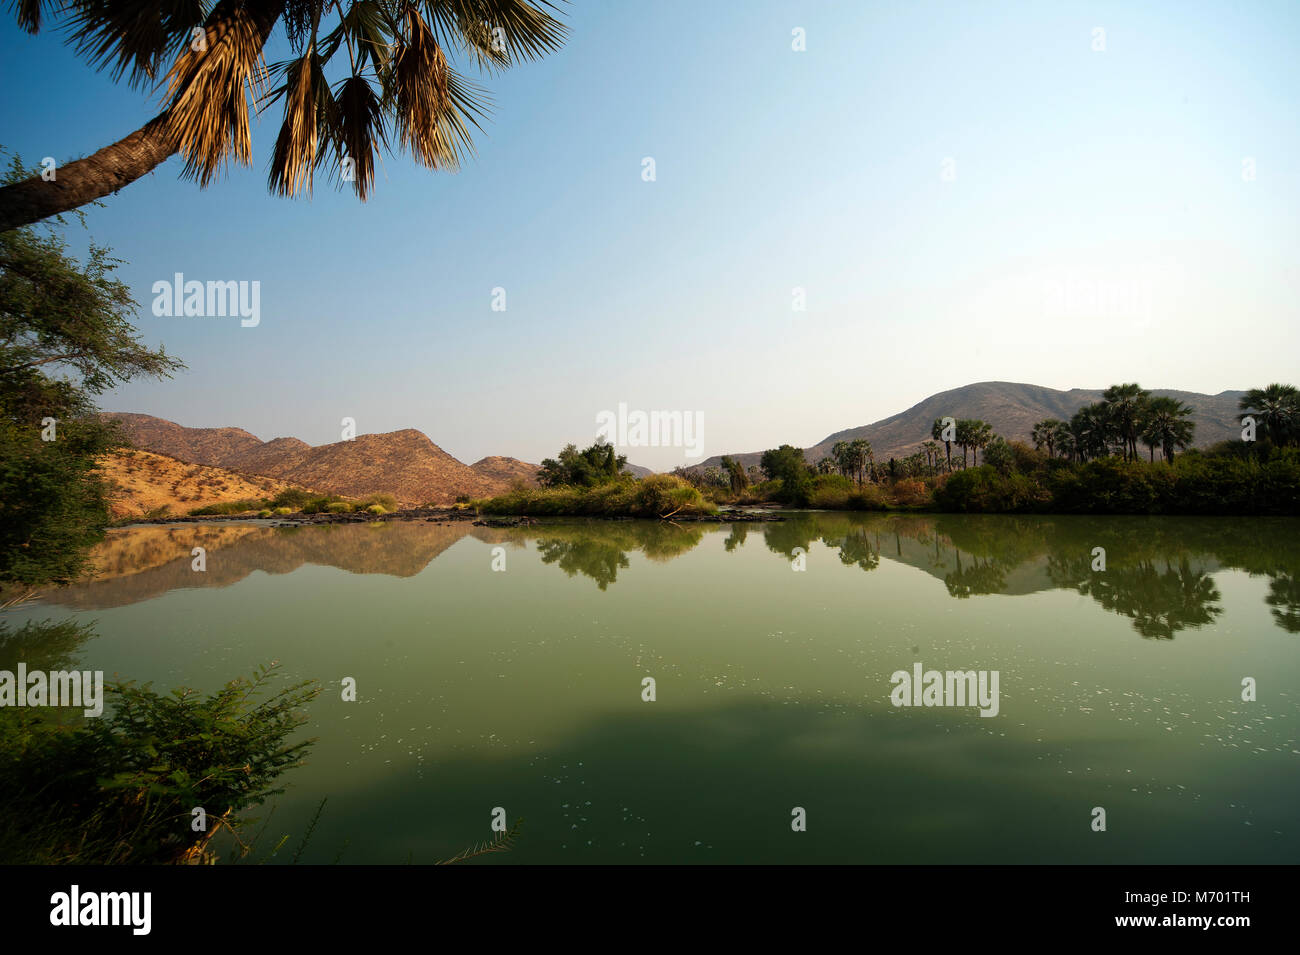 Placid waters of the Kunene river near Epupa Falls on the Angola border, Kunene region. On the other side of the - Stock Image